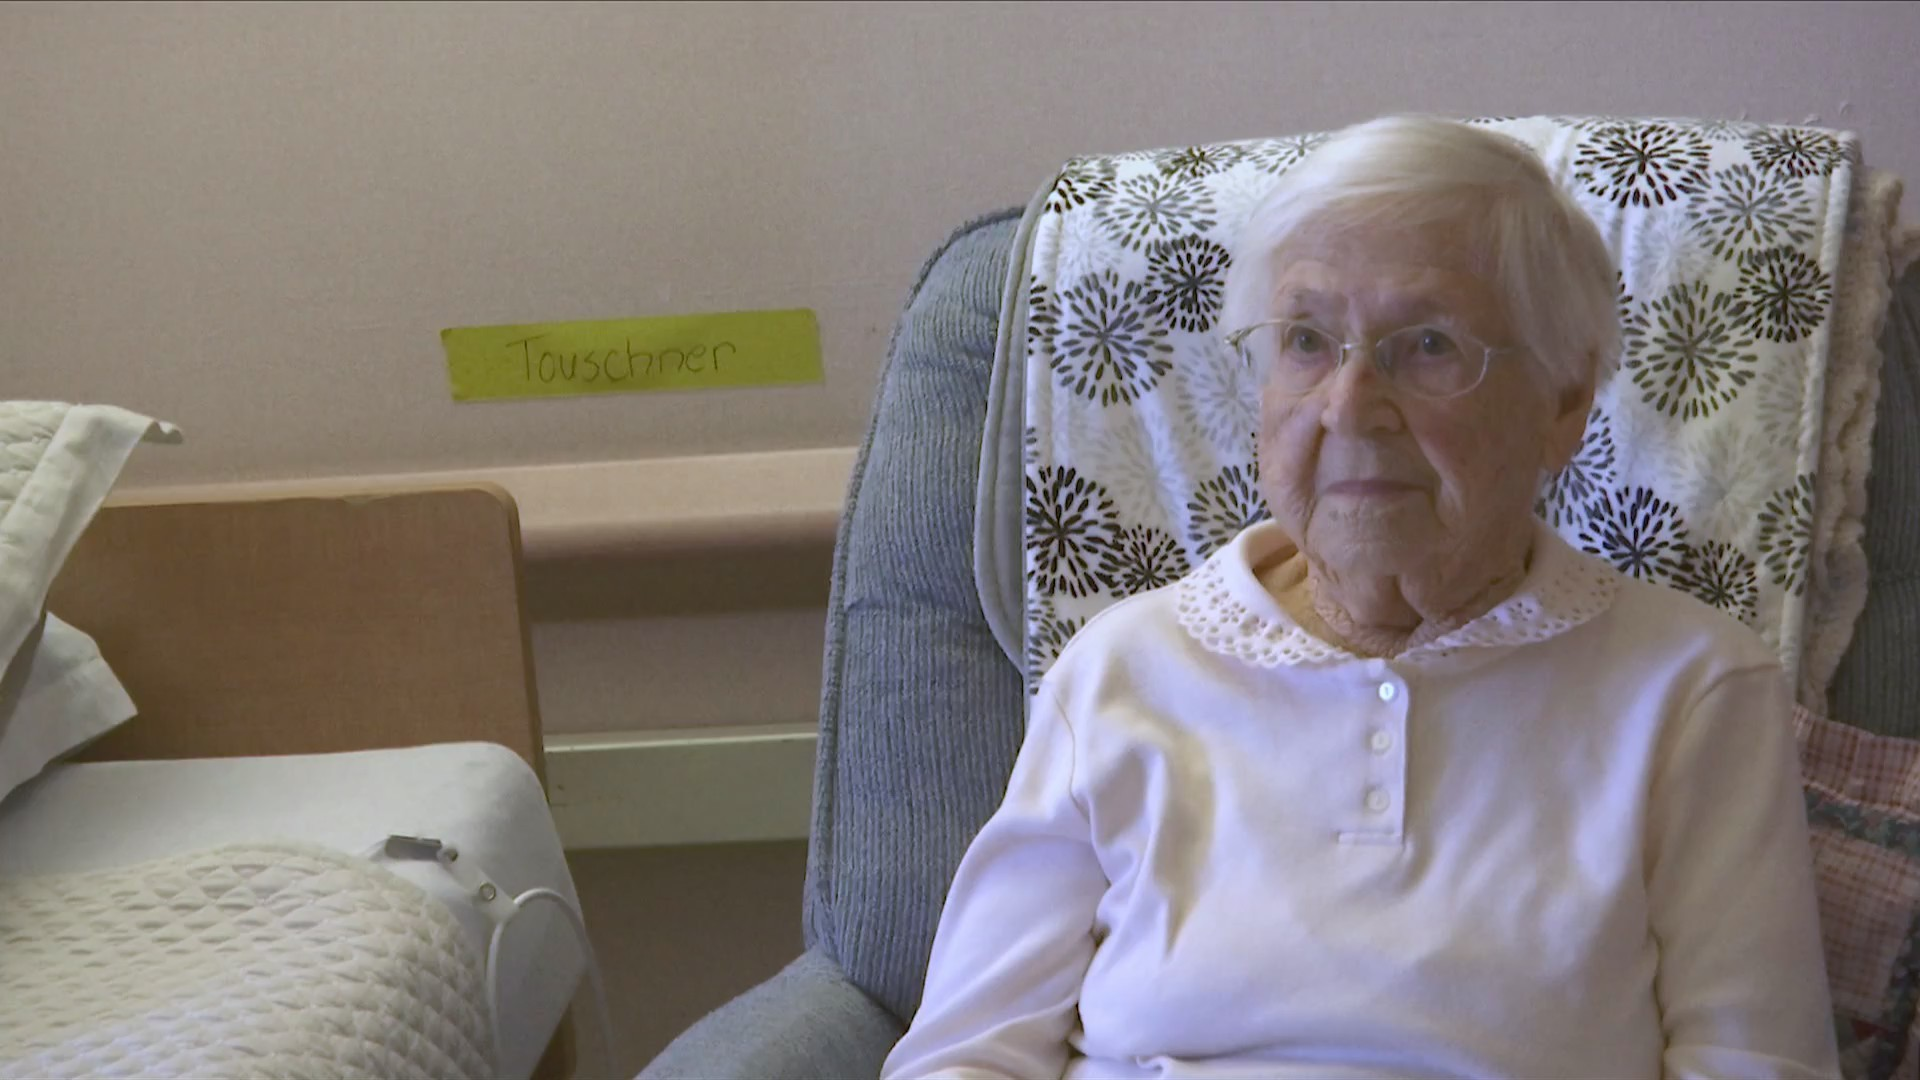 106-year-old Ruth Touschner leads life of humility, simplicity